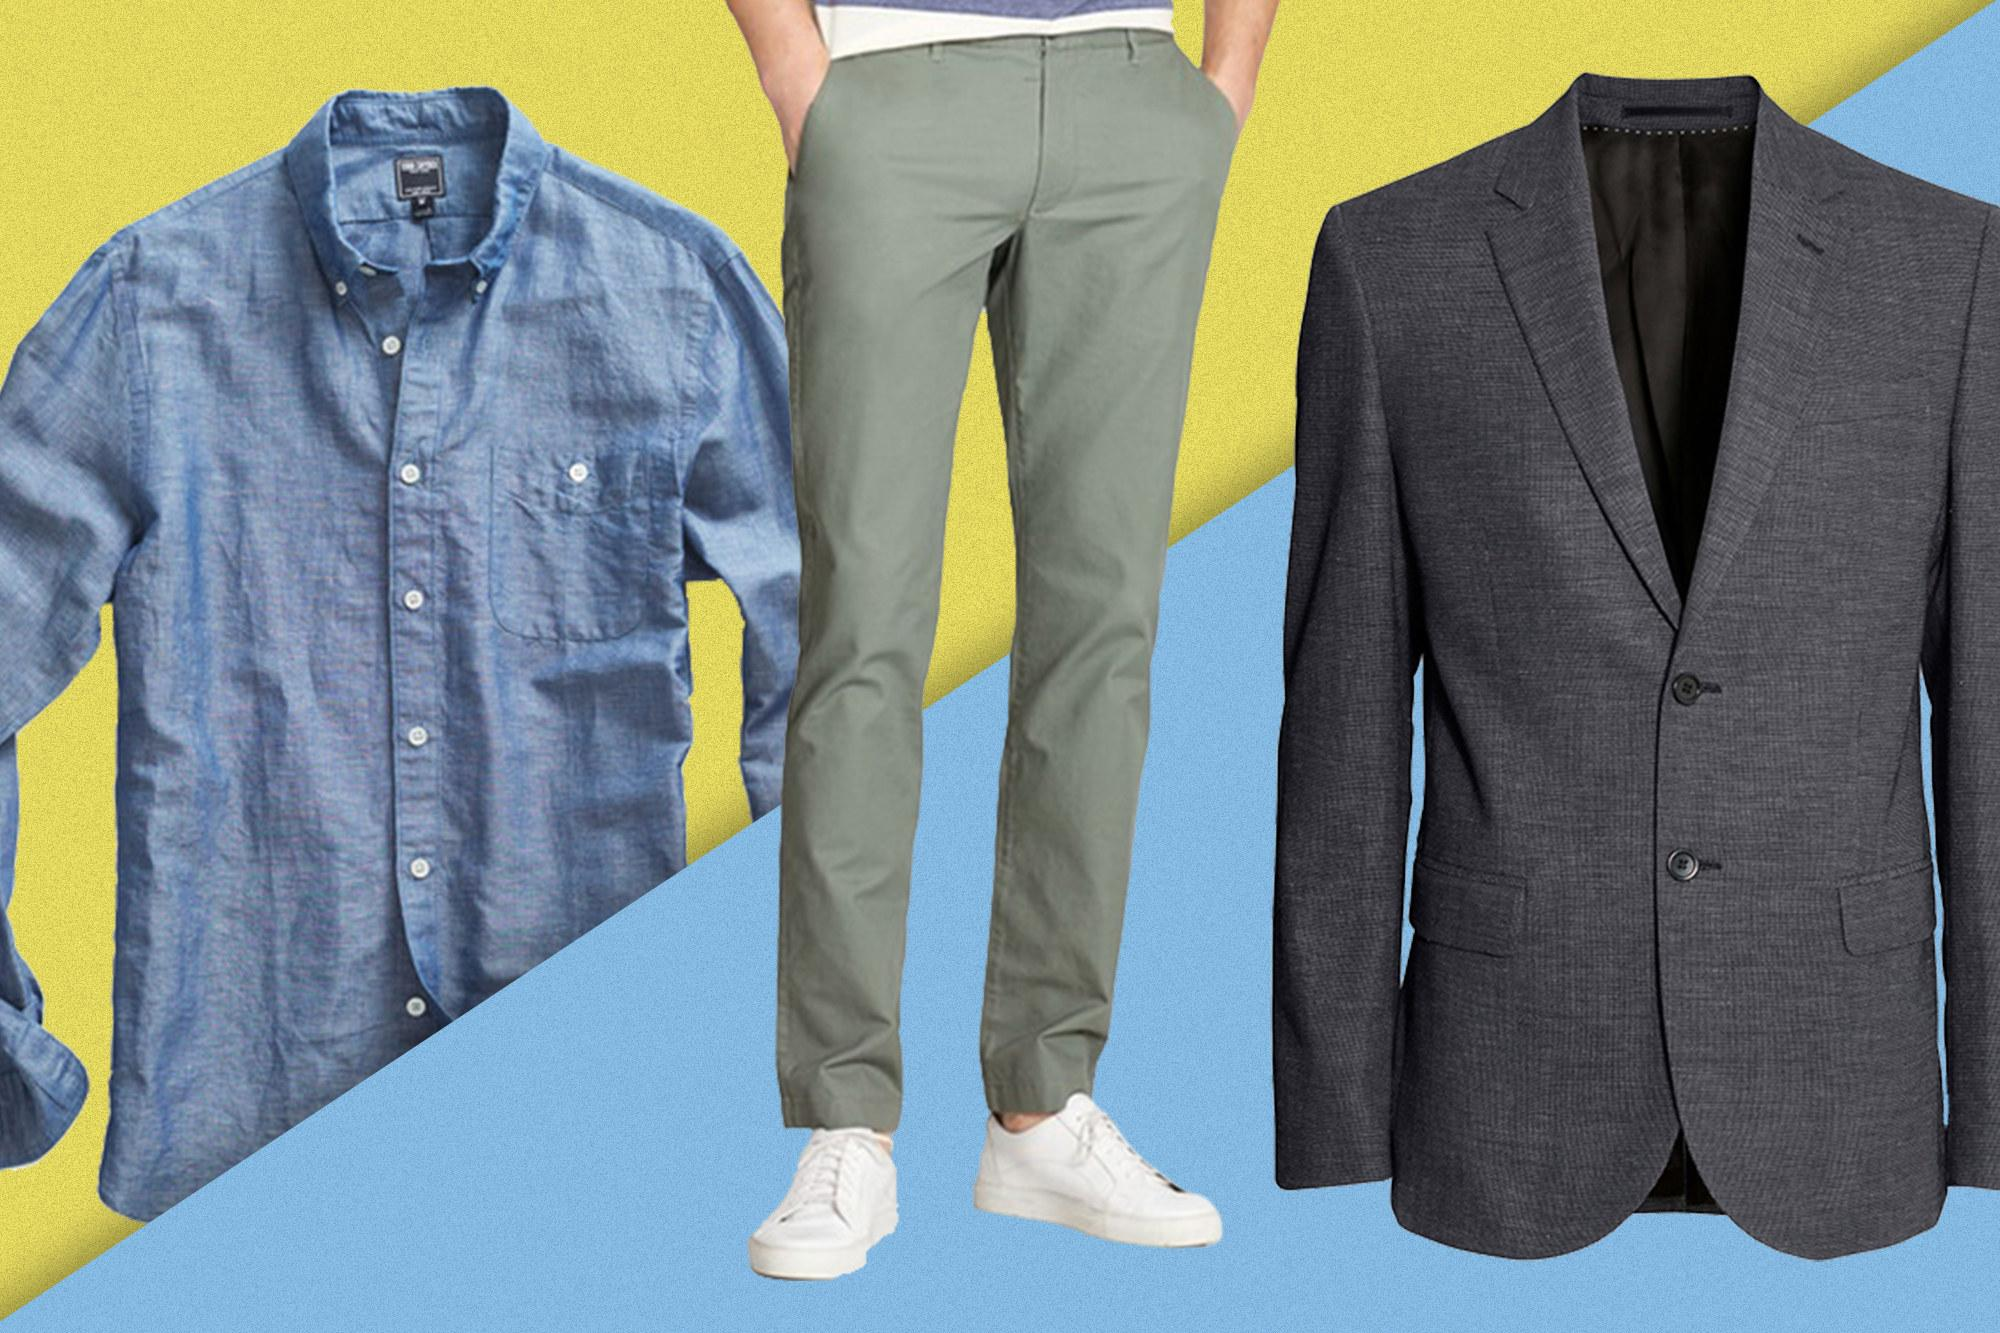 10 summer sale pieces you can wear all through fall http://t.co/IP73F0znhw http://t.co/1NaOgaHrFp